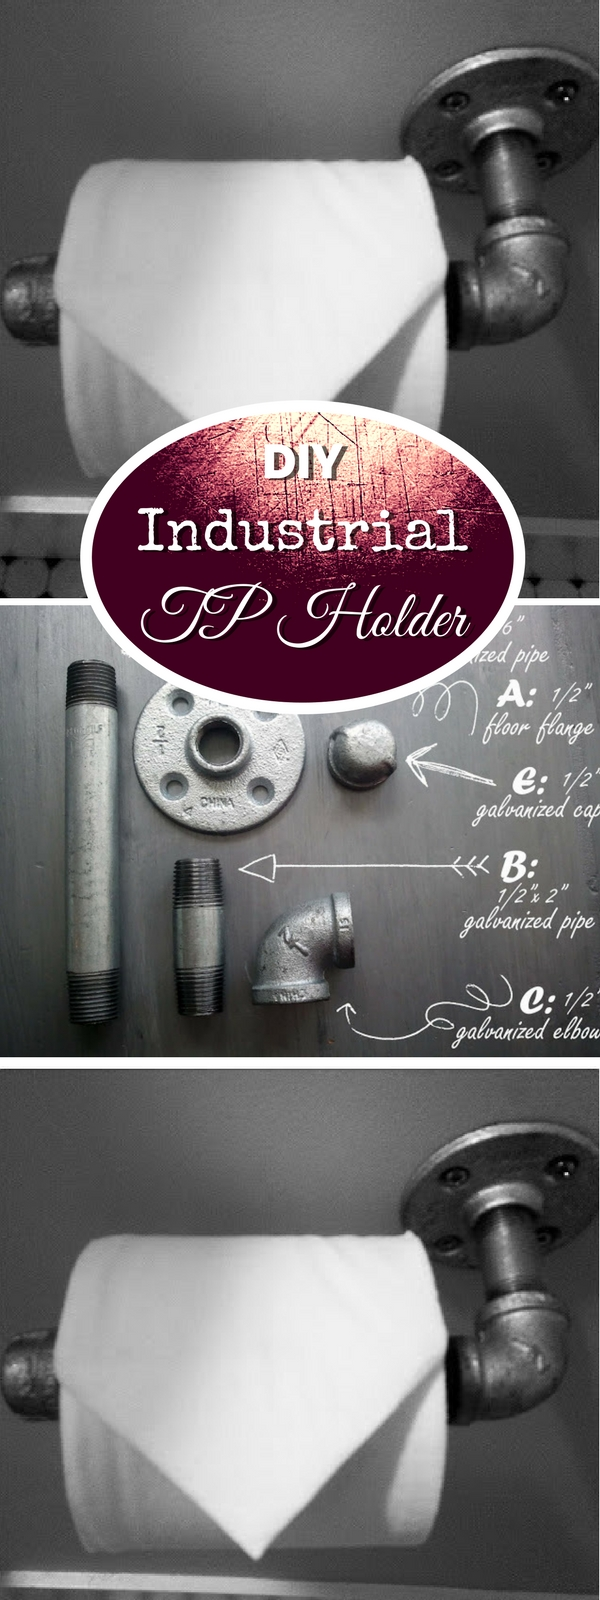 How to make a quick and easy #DIY industrial toilet paper holder #bathroomdecor